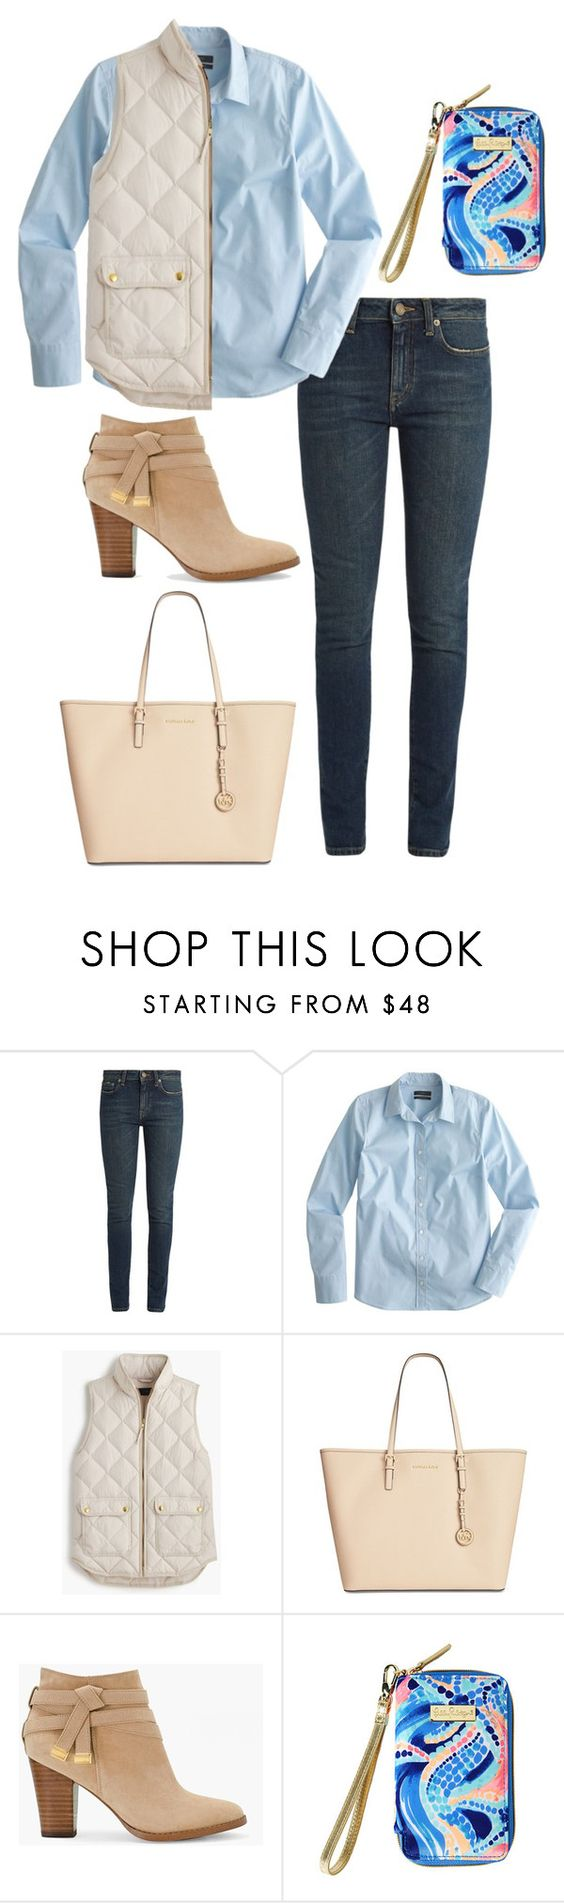 """Fall is coming - rate 1-10"" by patriotsfan101 ❤ liked on Polyvore featuring Yves Saint Laurent, J.Crew, Michael Kors, White House Black Market and Lilly Pulitzer"